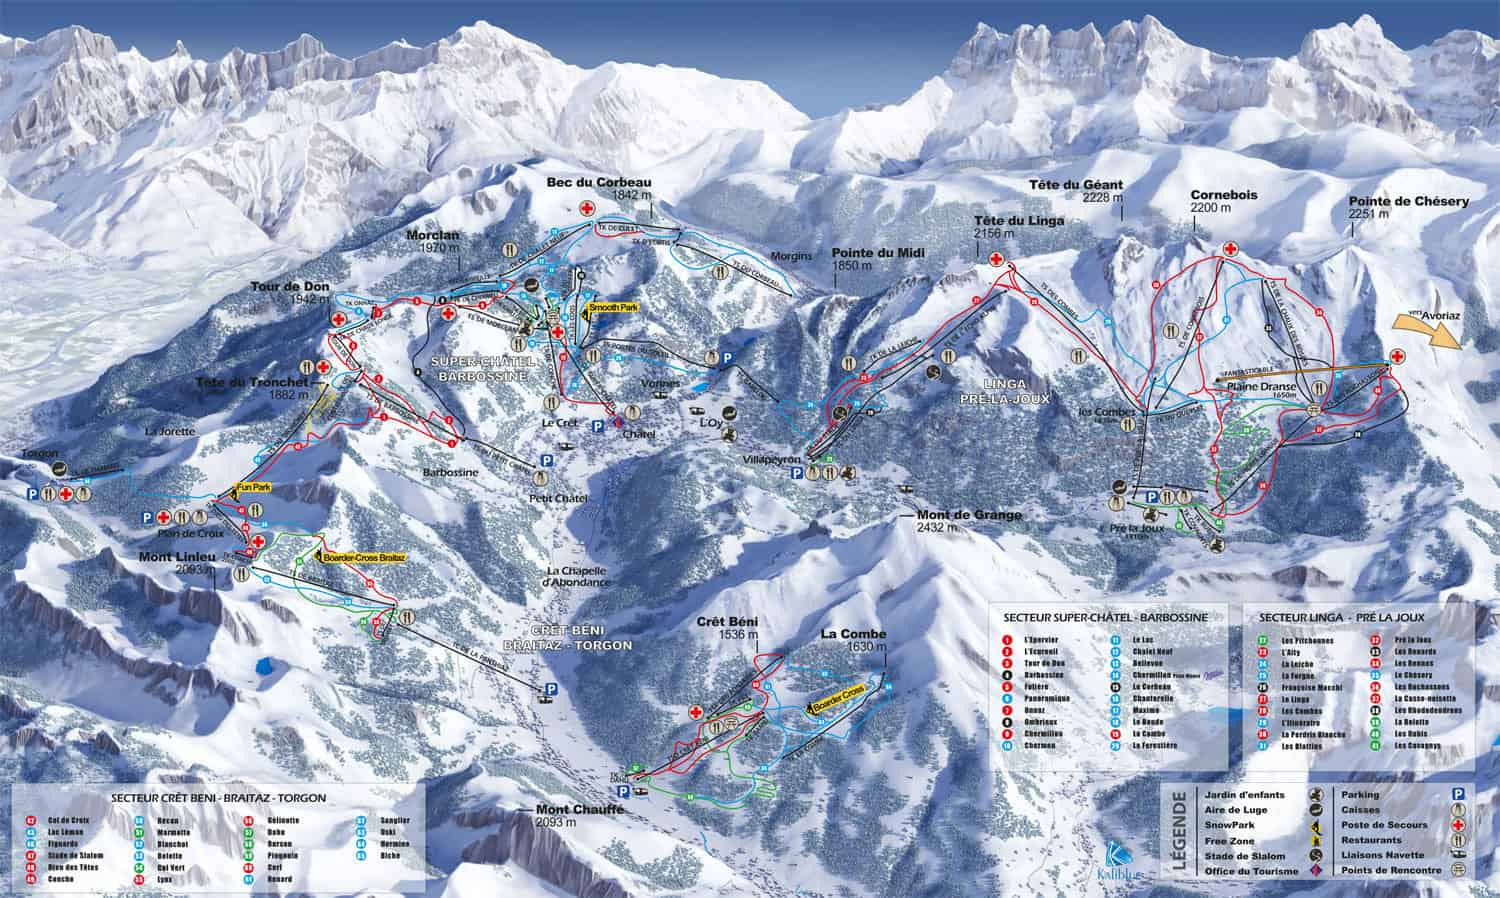 Ski Area and Piste Maps Chatel France Clarian Chalets